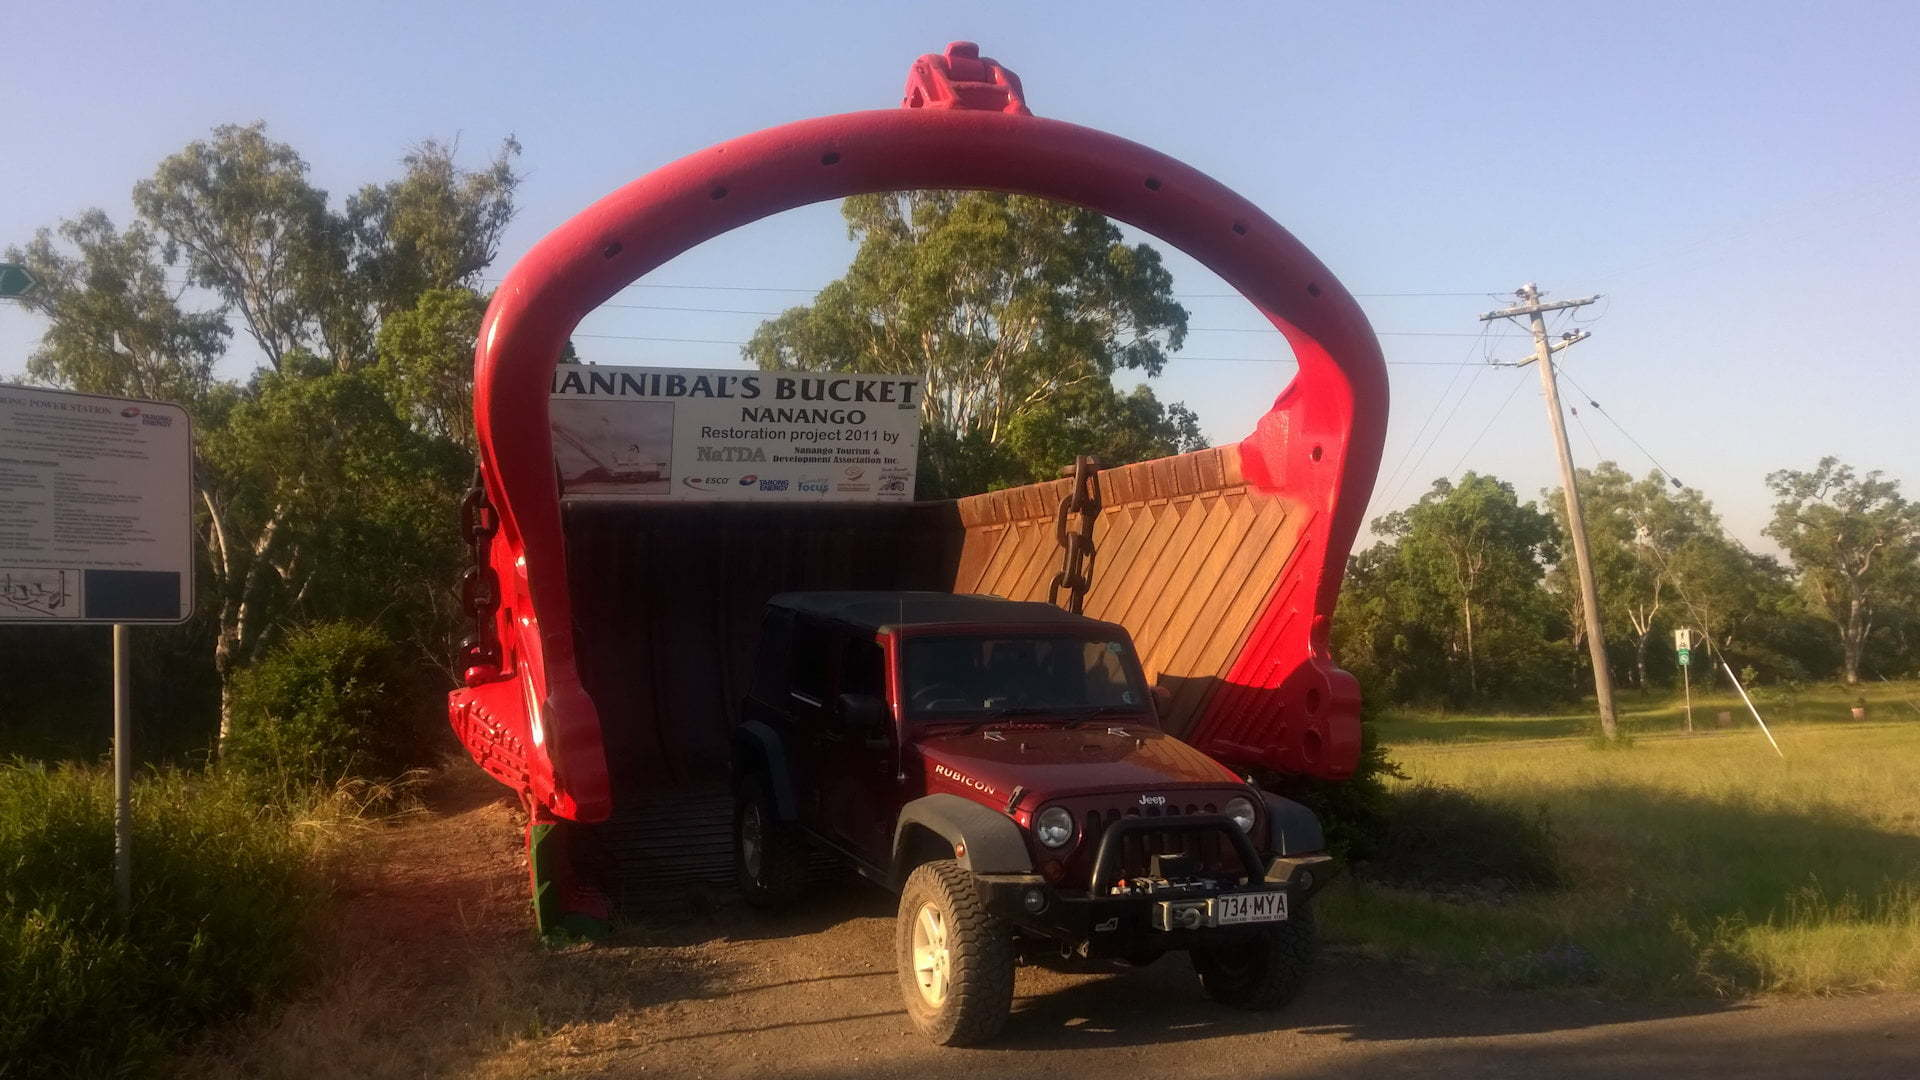 Big Hannibal's Bucket in Nanango with a Jeep JK Rubicon parked partly in the bucket